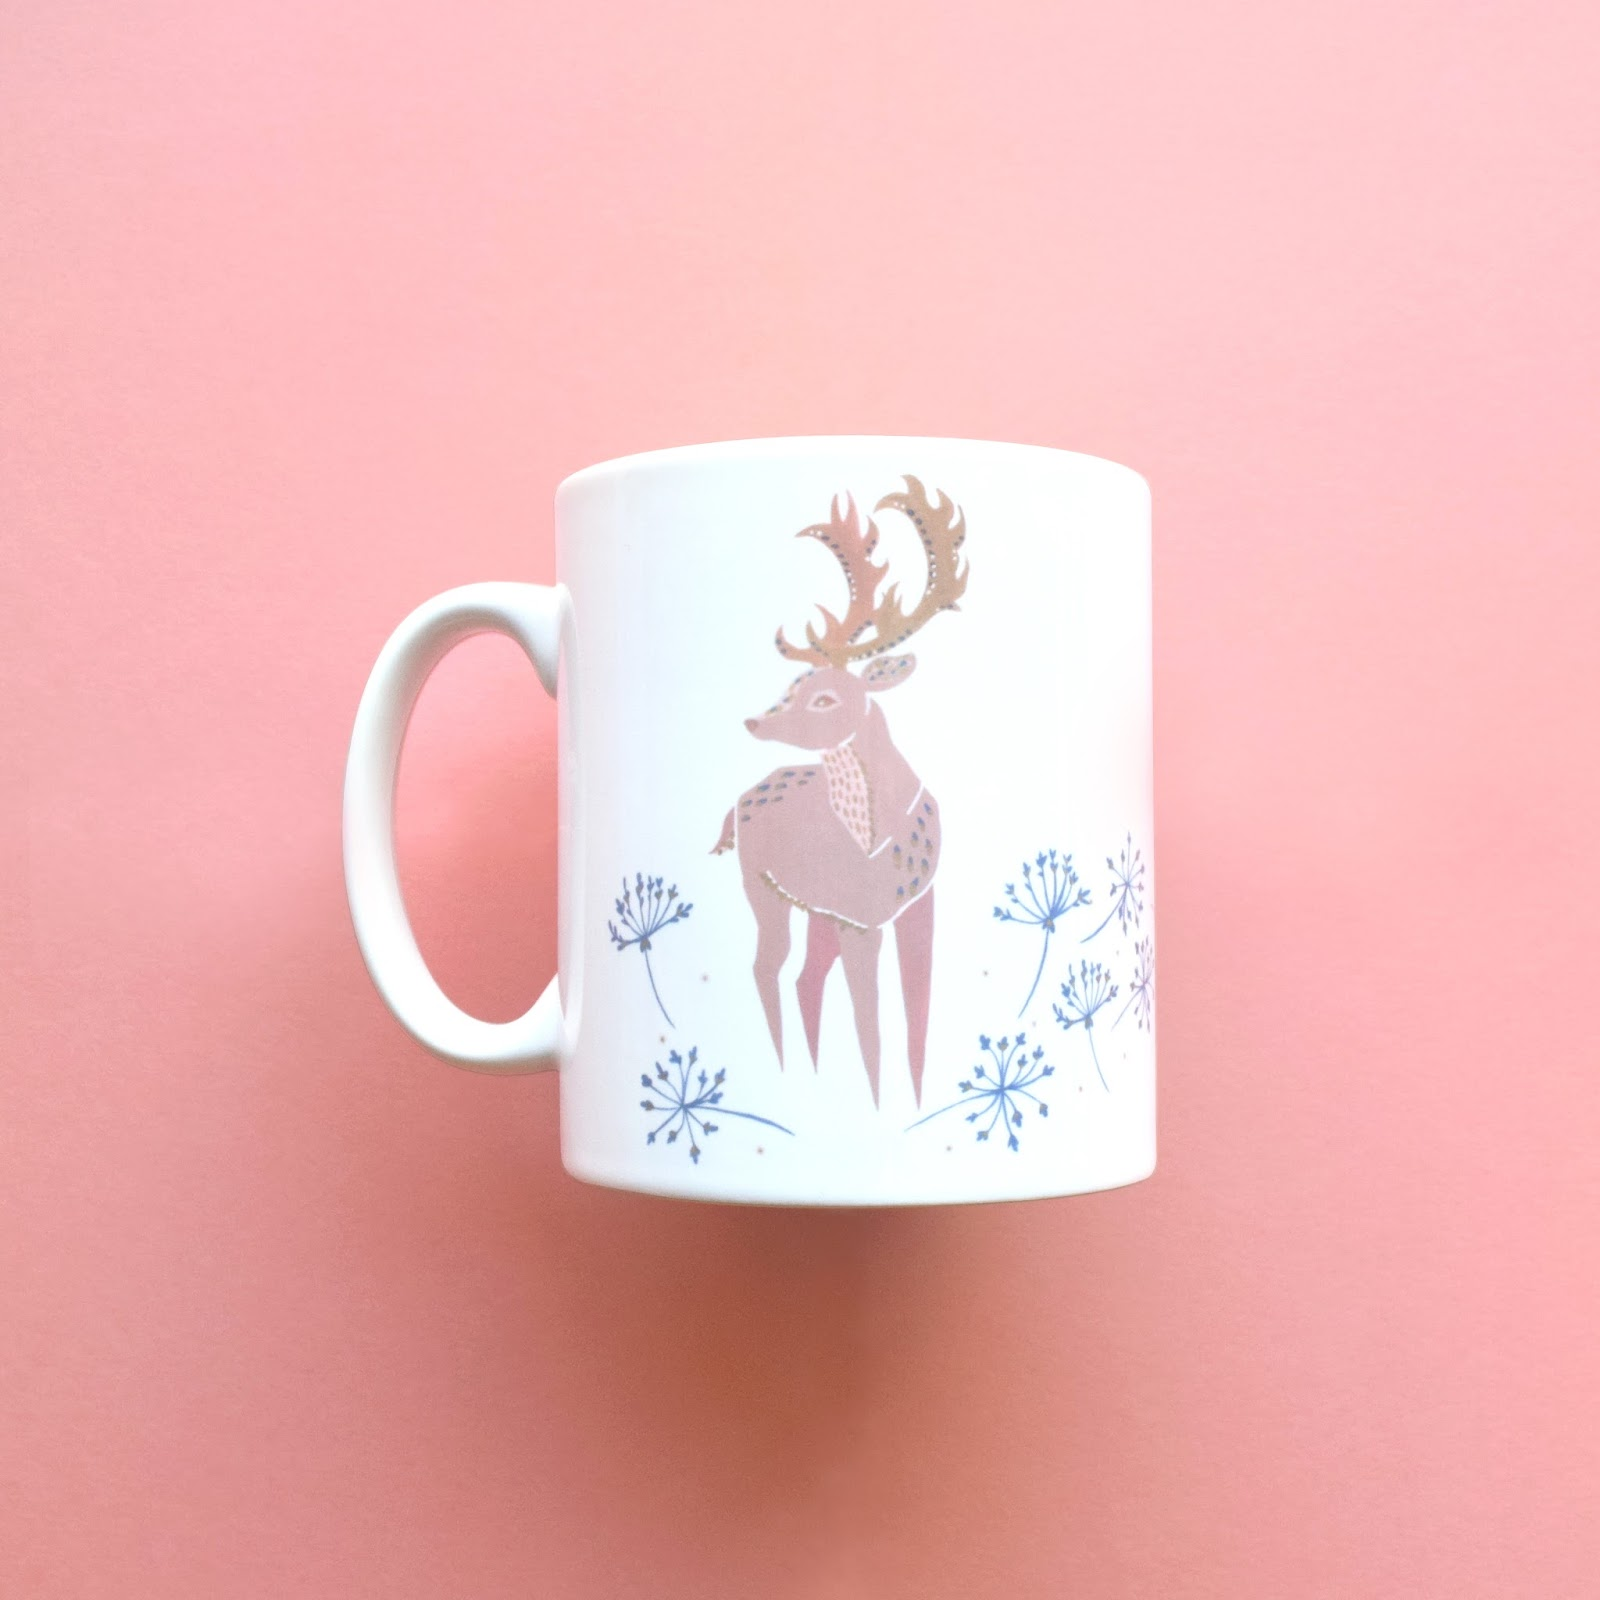 mug with a illustrated deer